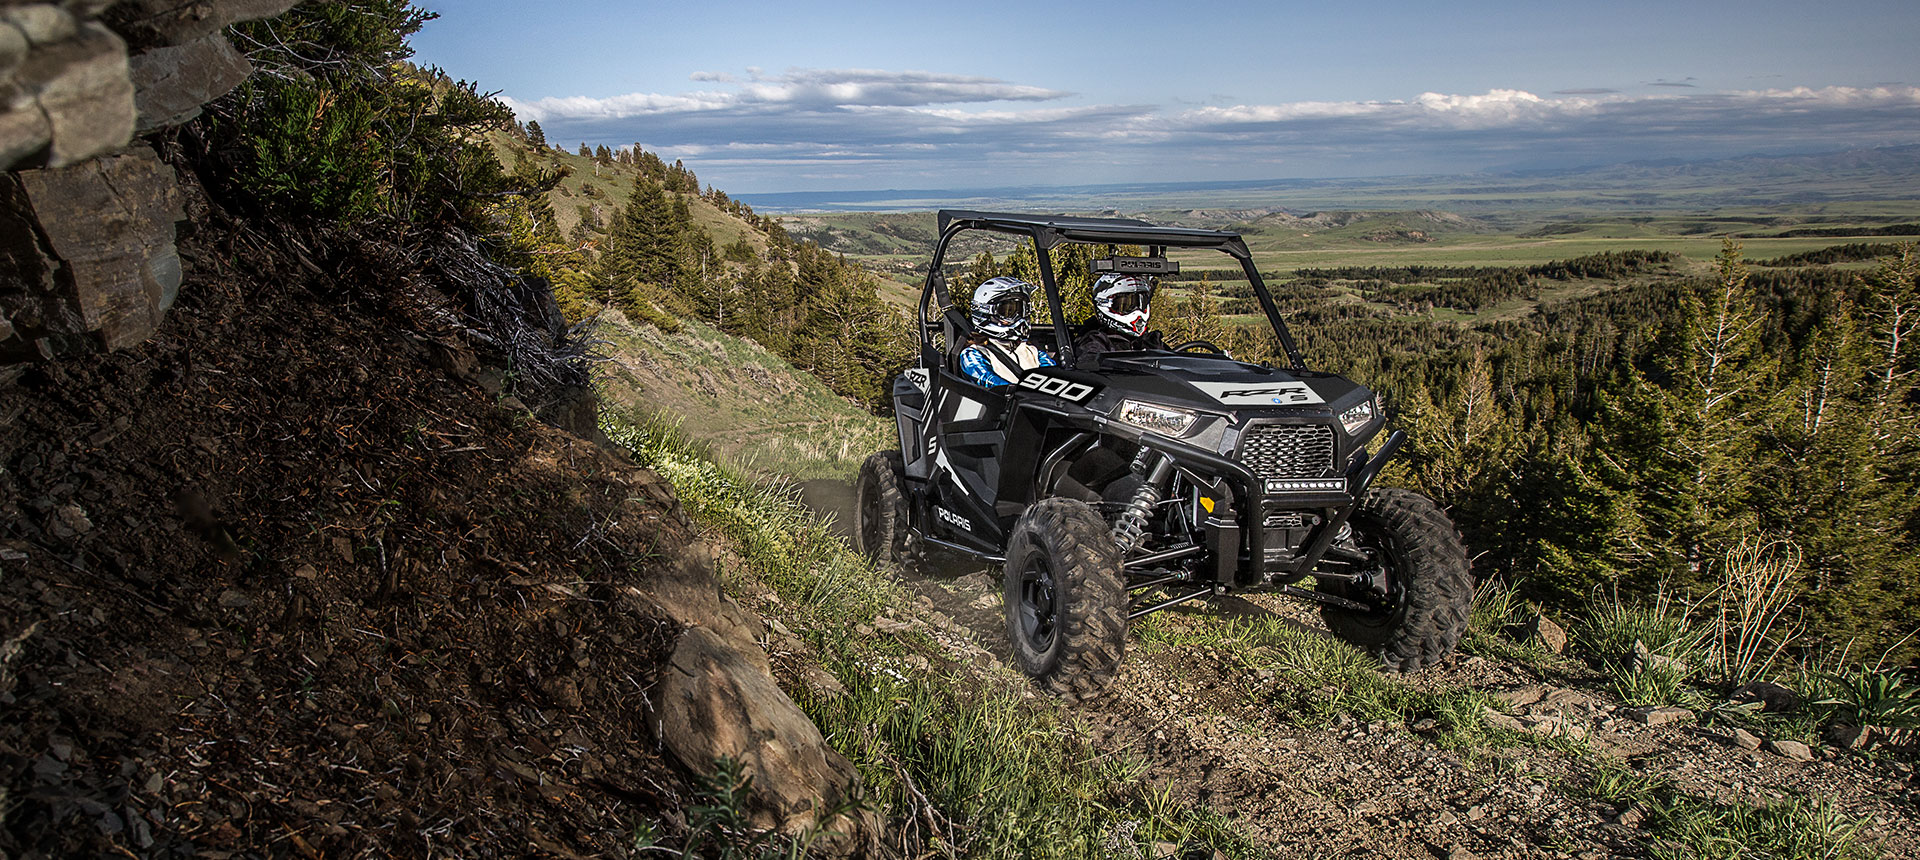 2019 Polaris RZR S 900 EPS in Sterling, Illinois - Photo 4